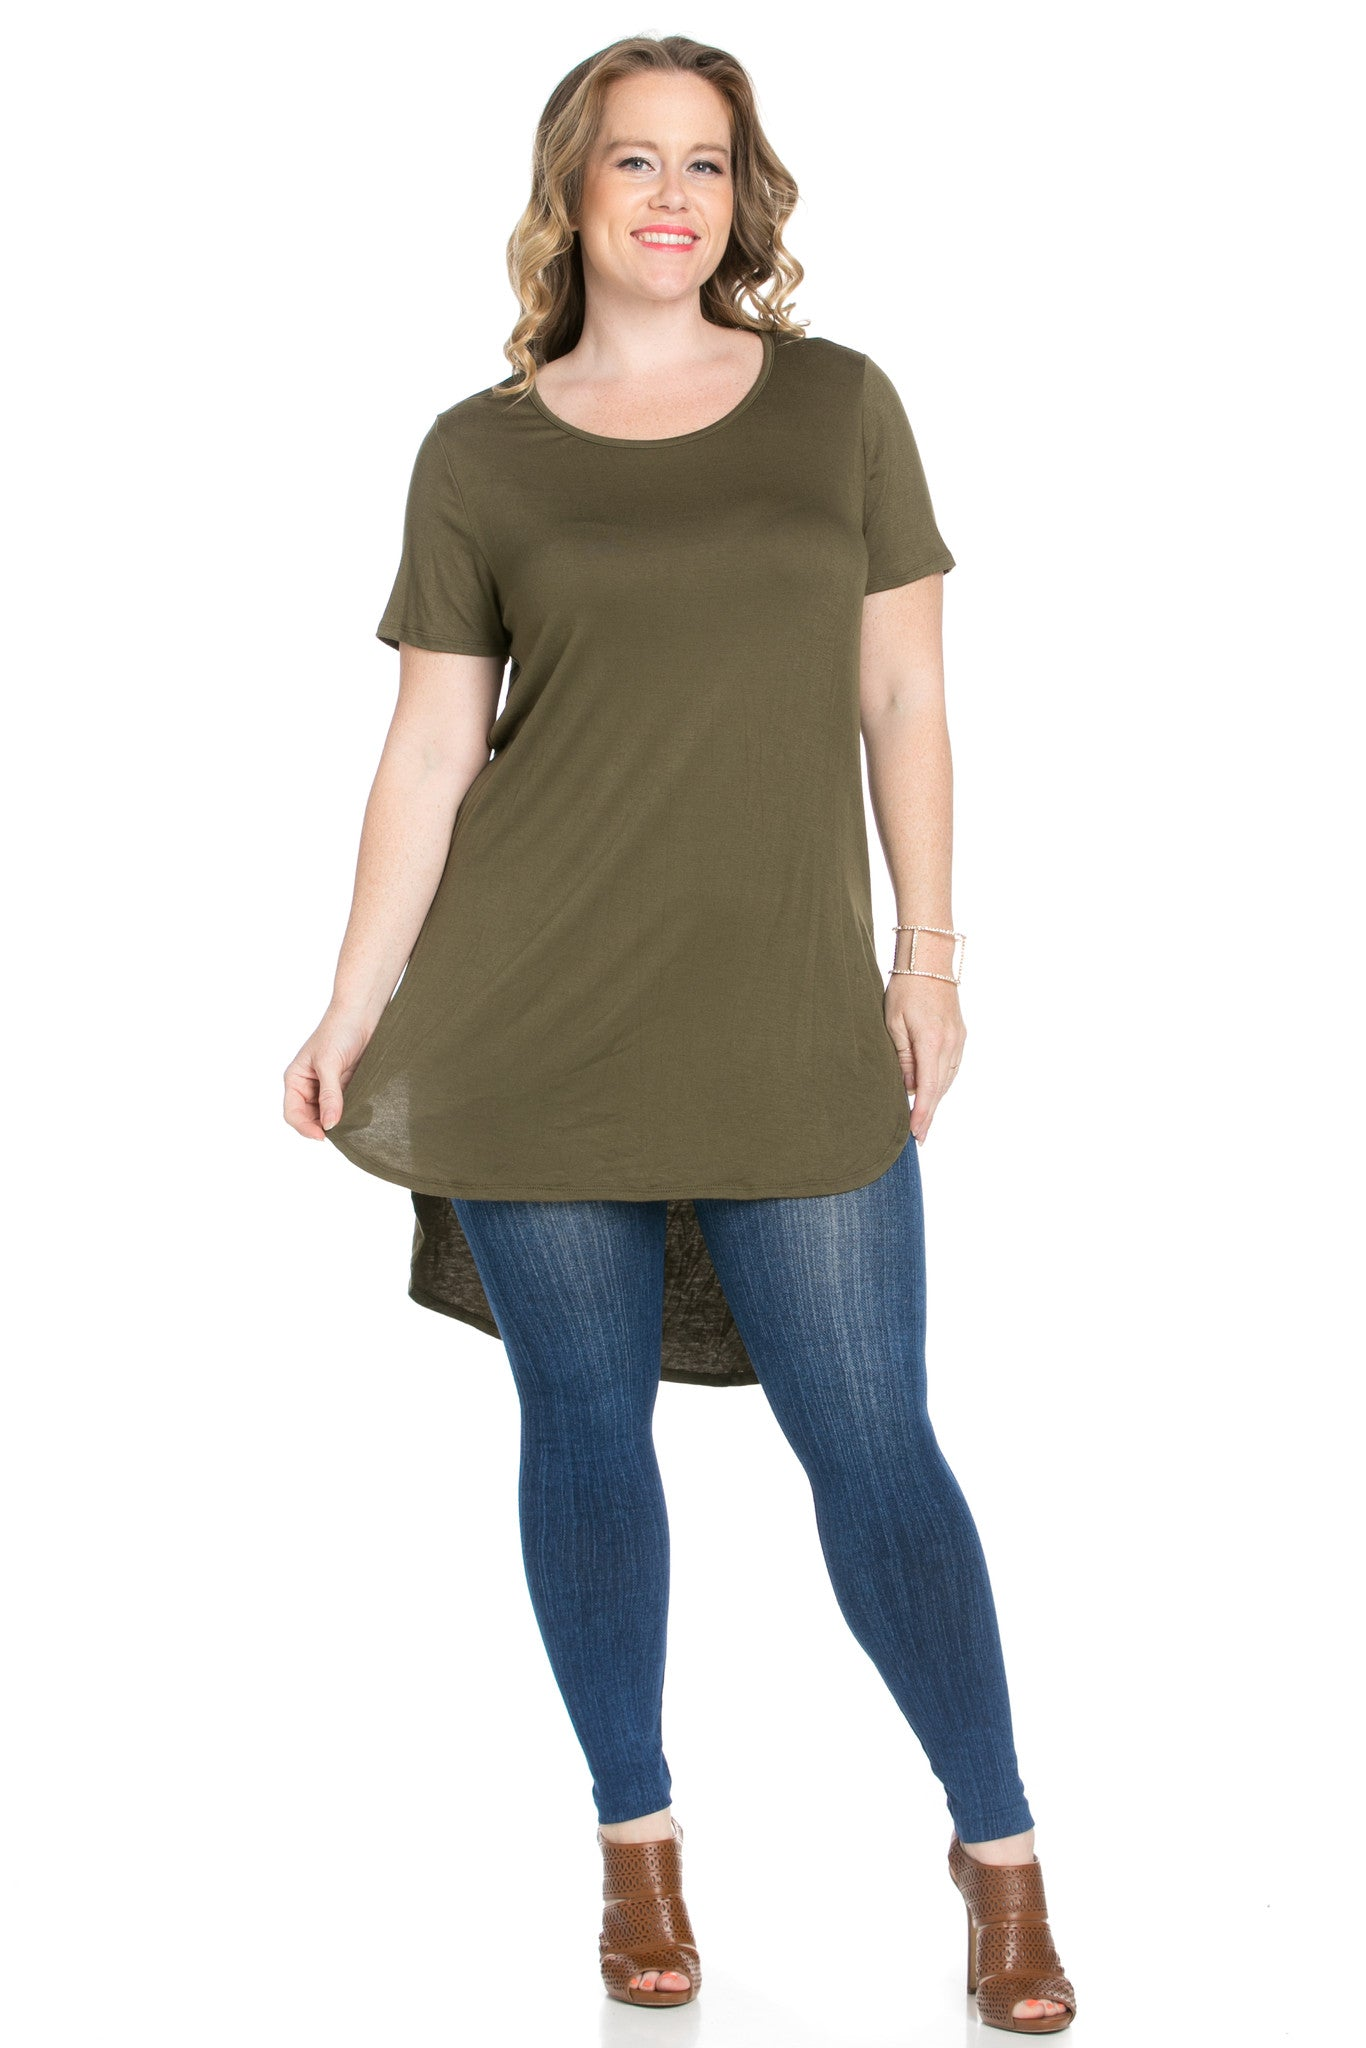 Olive Zipper Party In The Front - Blouses - My Yuccie - 4